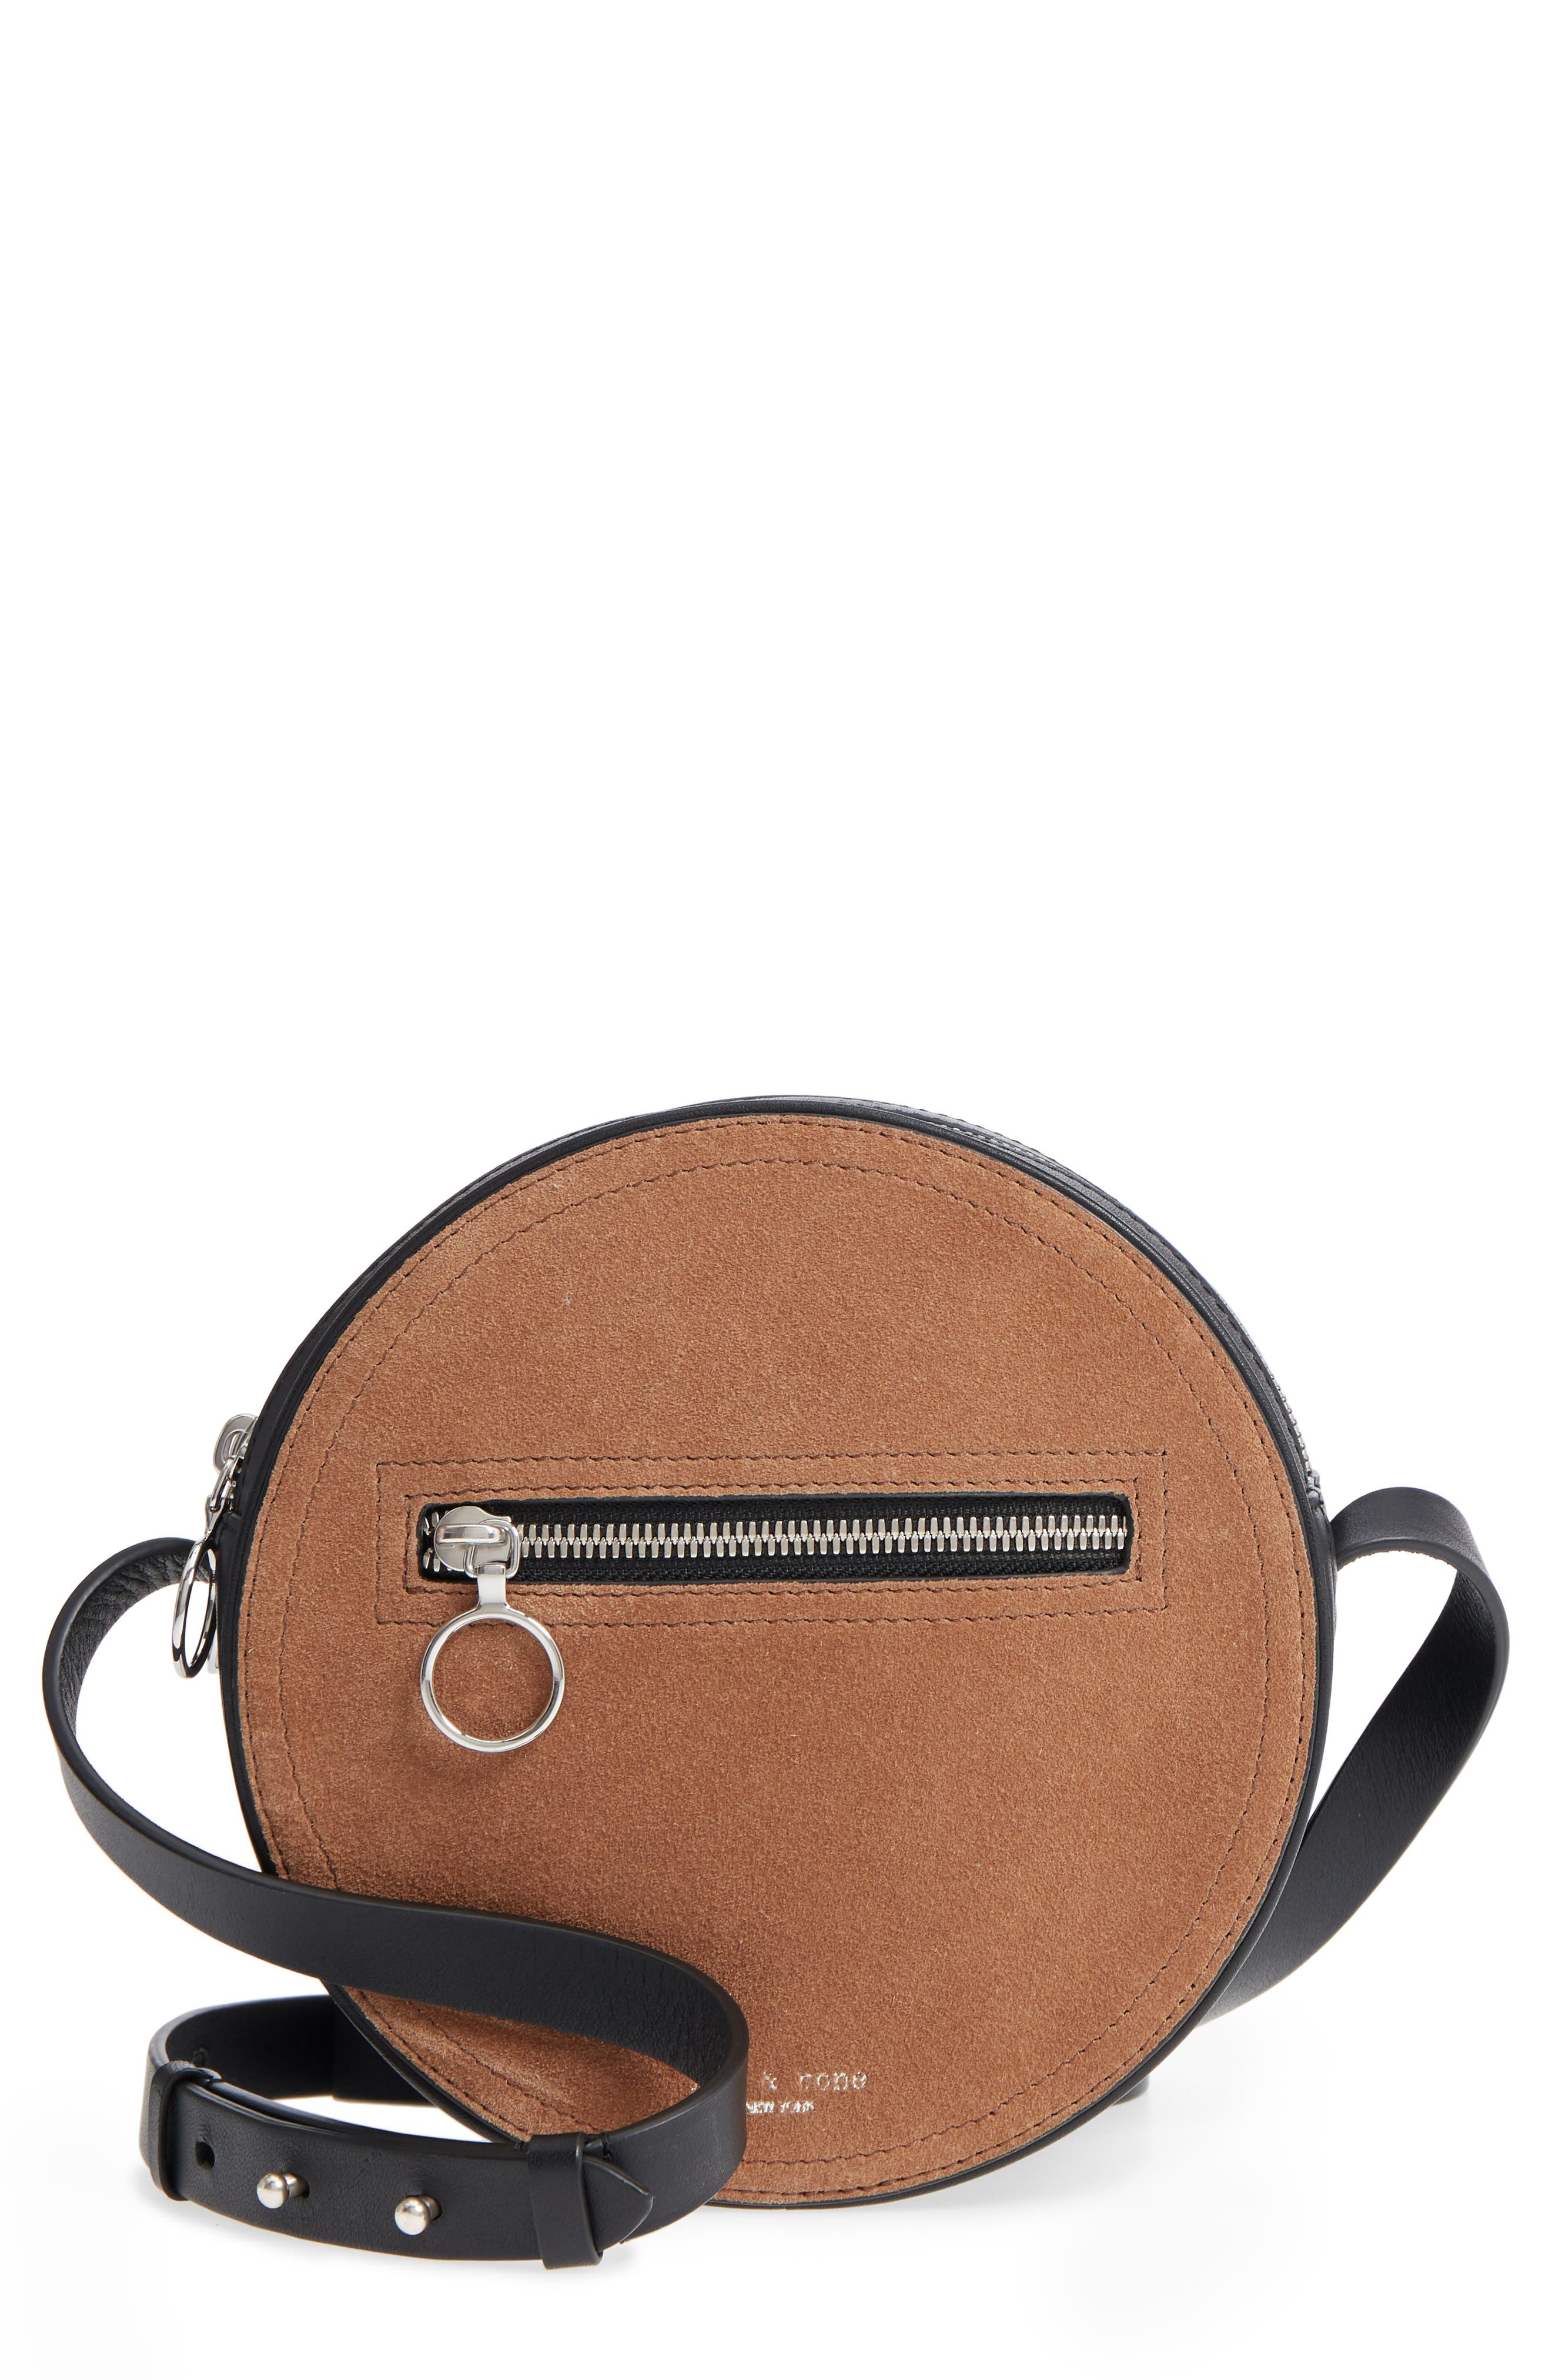 Suede & Leather Circle Crossbody Bag, Main, color, 200